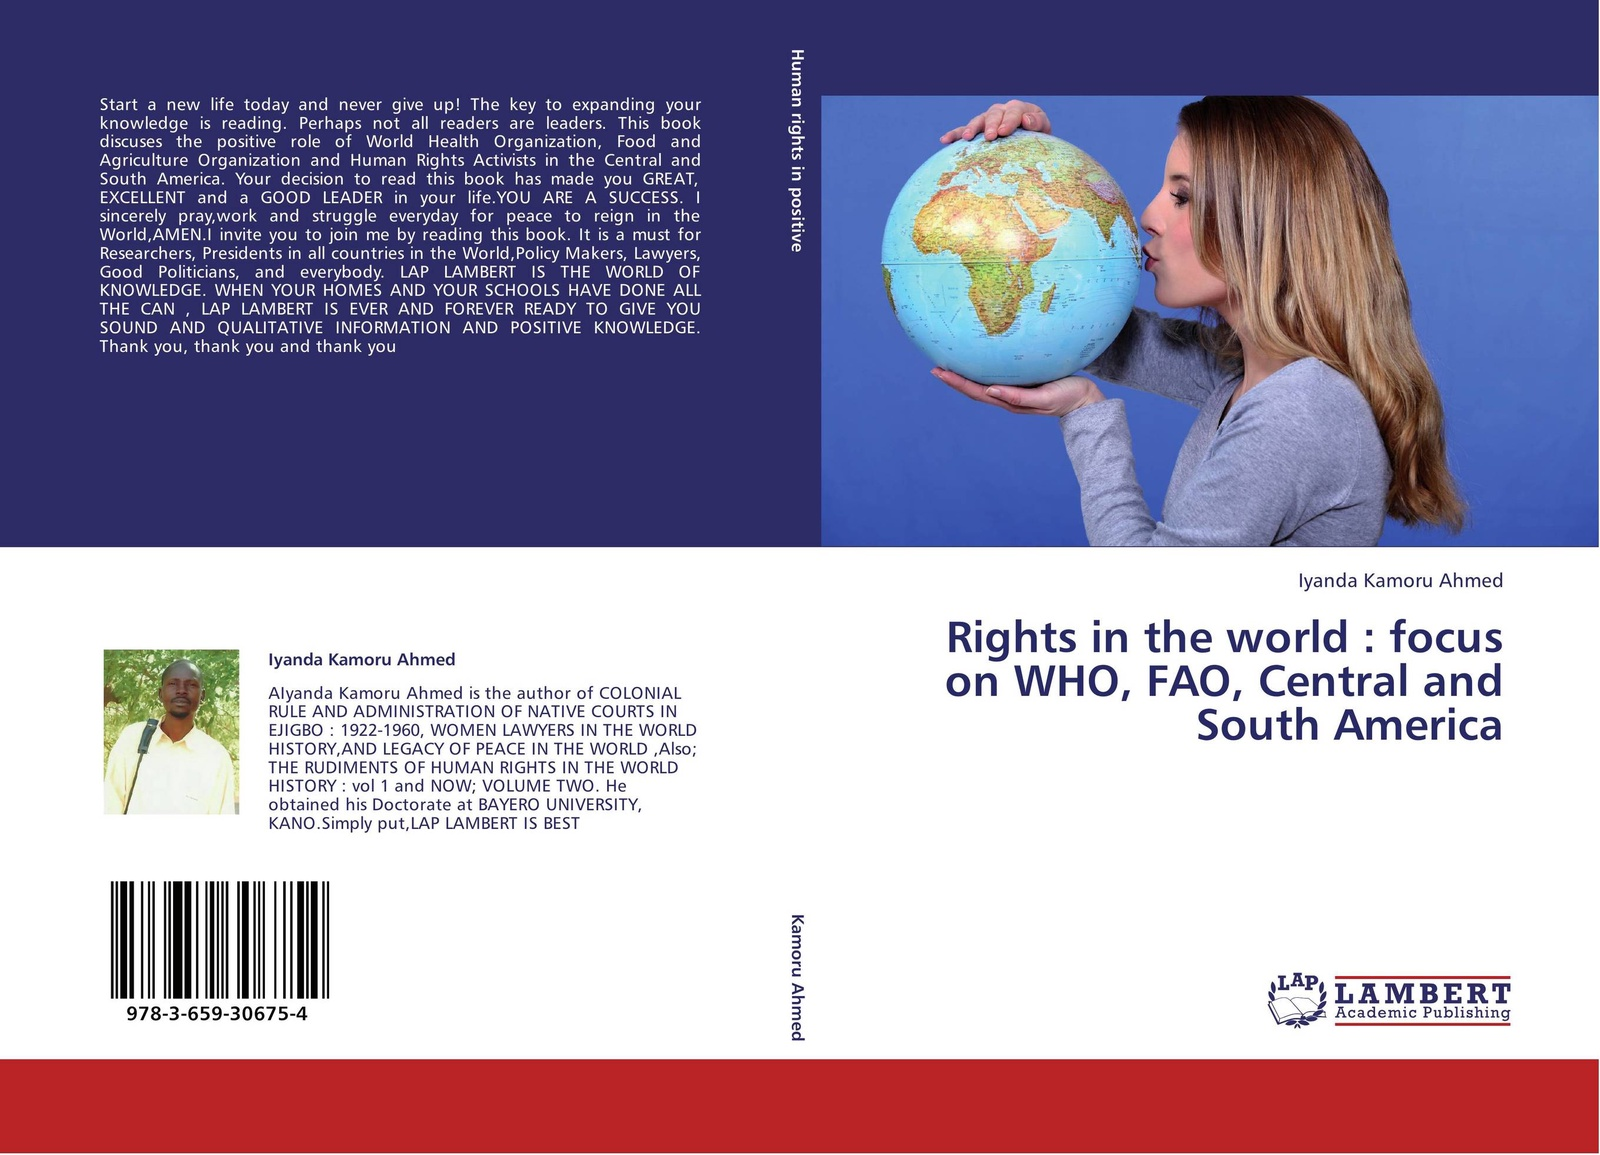 Iyanda Kamoru Ahmed Rights in the world : focus on WHO, FAO, Central and South America iyanda kamoru ahmed the rudiments of human rights in the world history